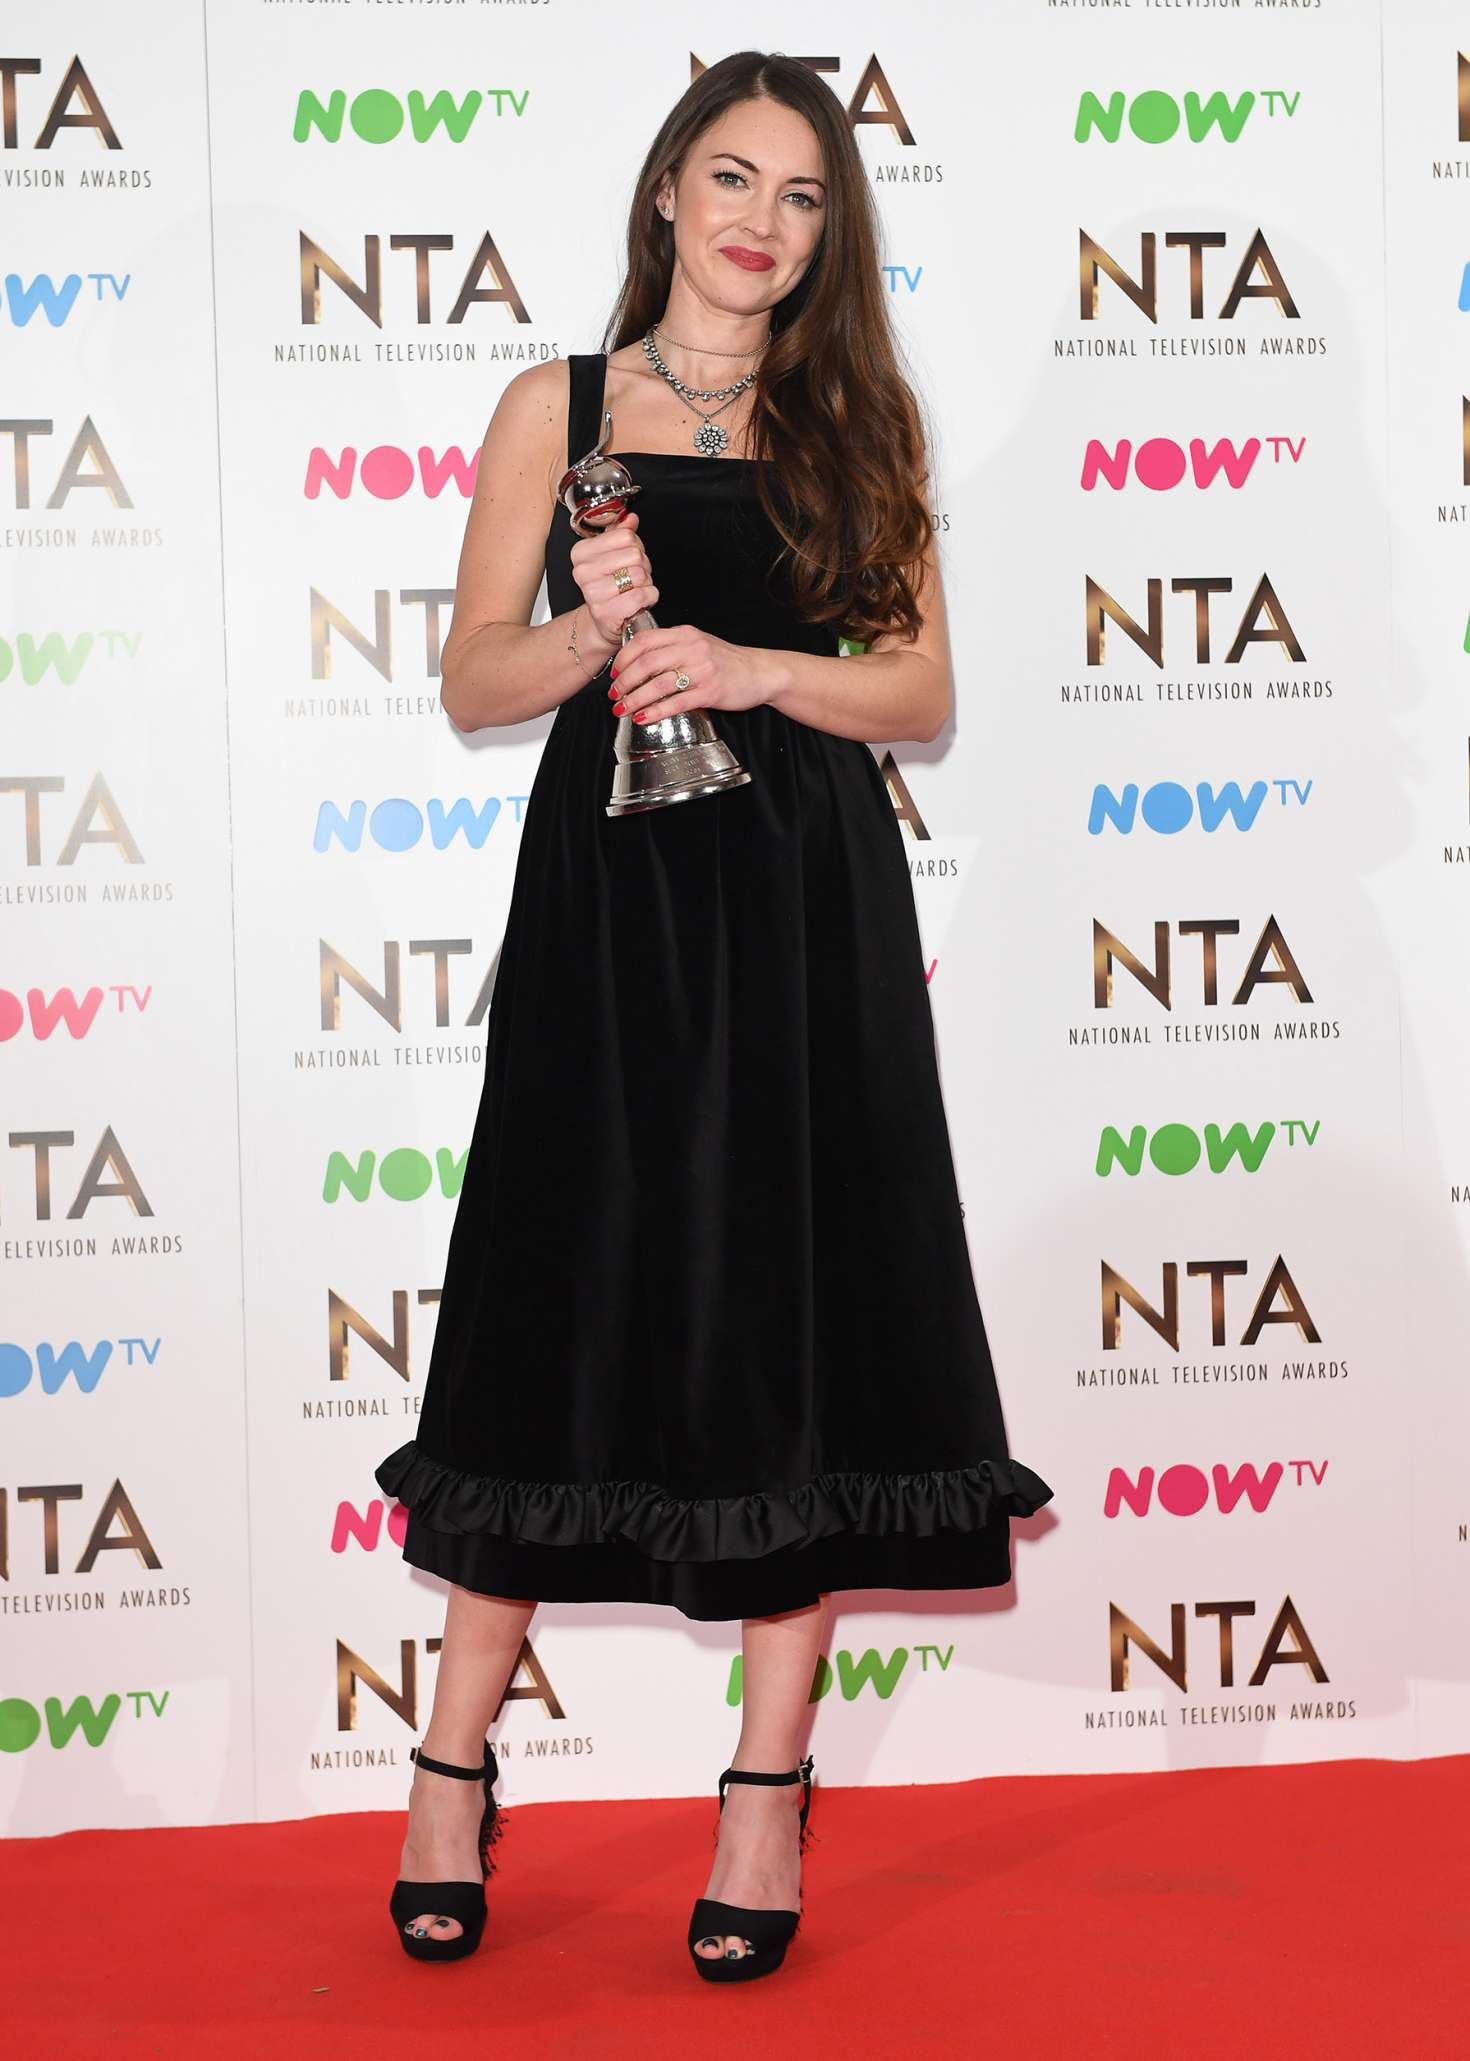 Lacey Turner 2017 : Lacey Turner: 2017 National Television Awards -05